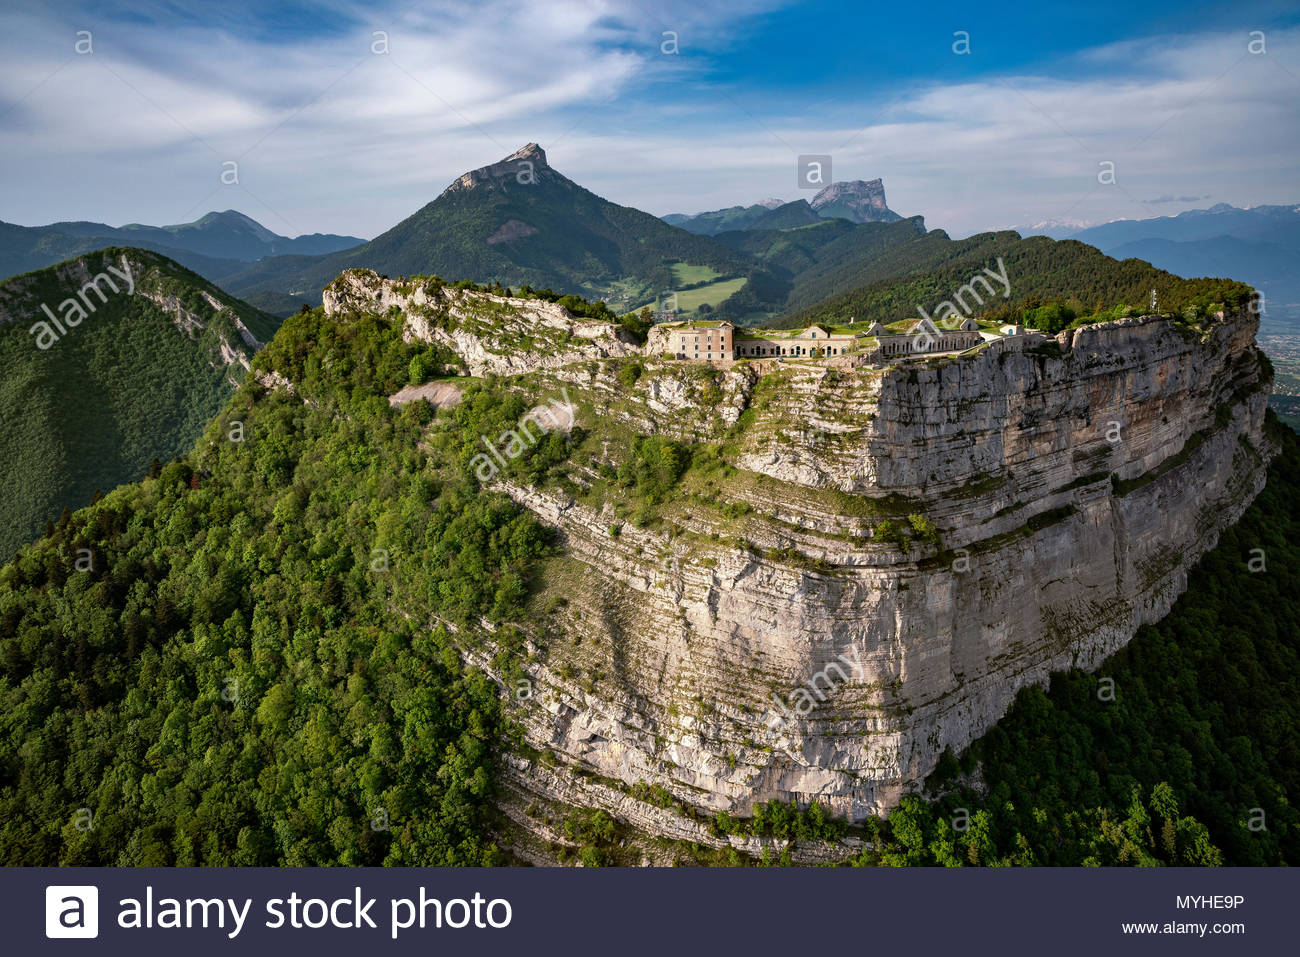 Aerial view of Saint Eynard fortifications and Chartreuse mountain range near Grenoble (France) - Stock Image